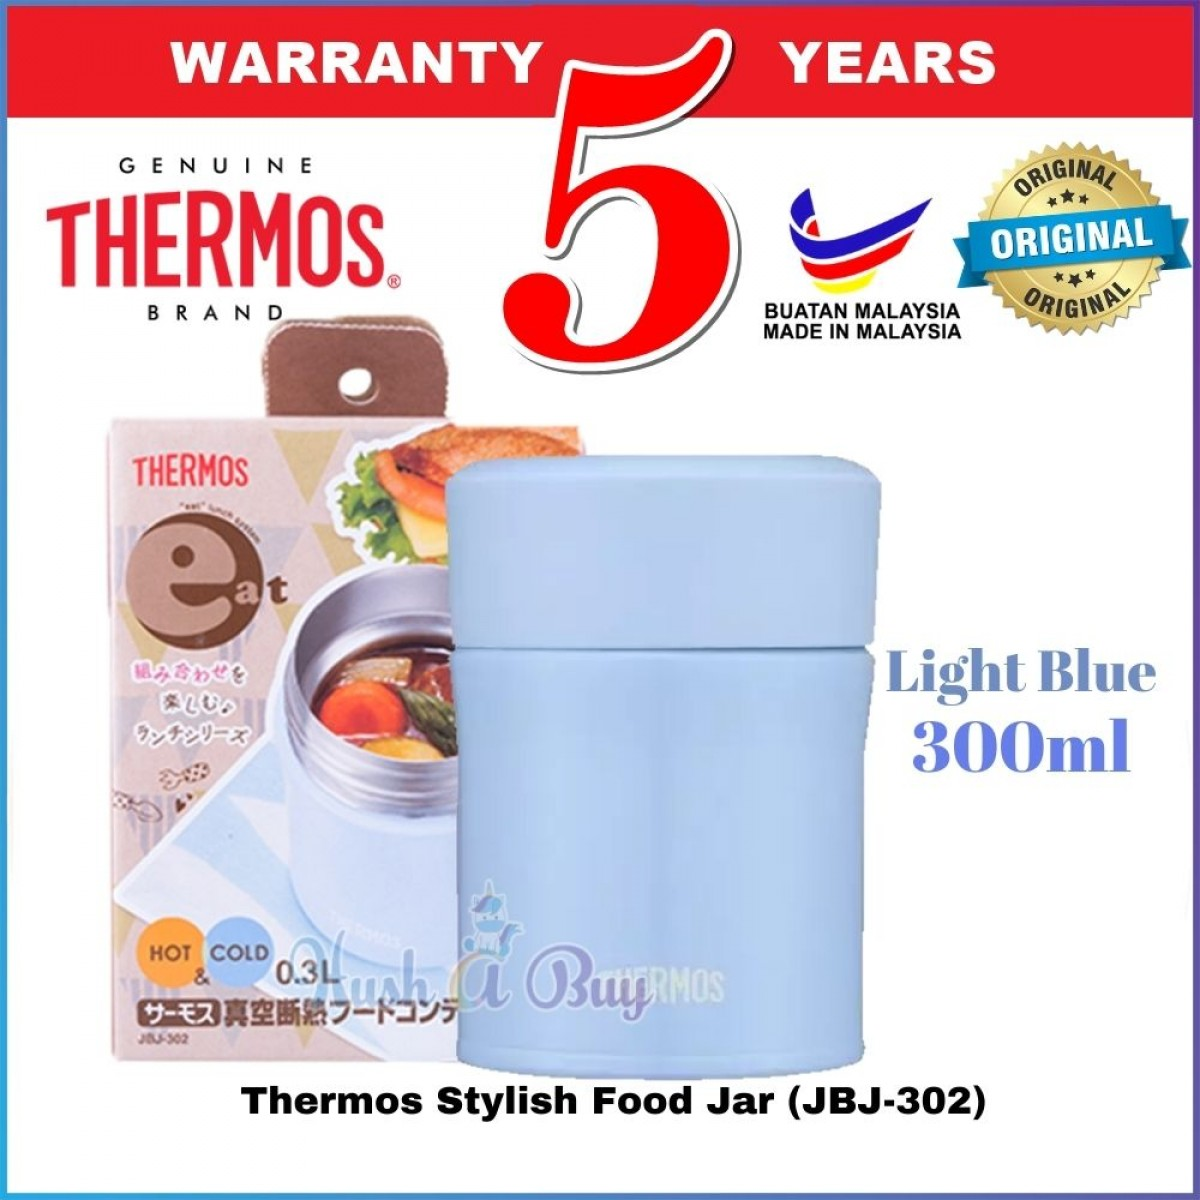 Thermos Stylish Food Jar 0.3L (JBJ-302) - 5 Years Warranty from Thermos Malaysia